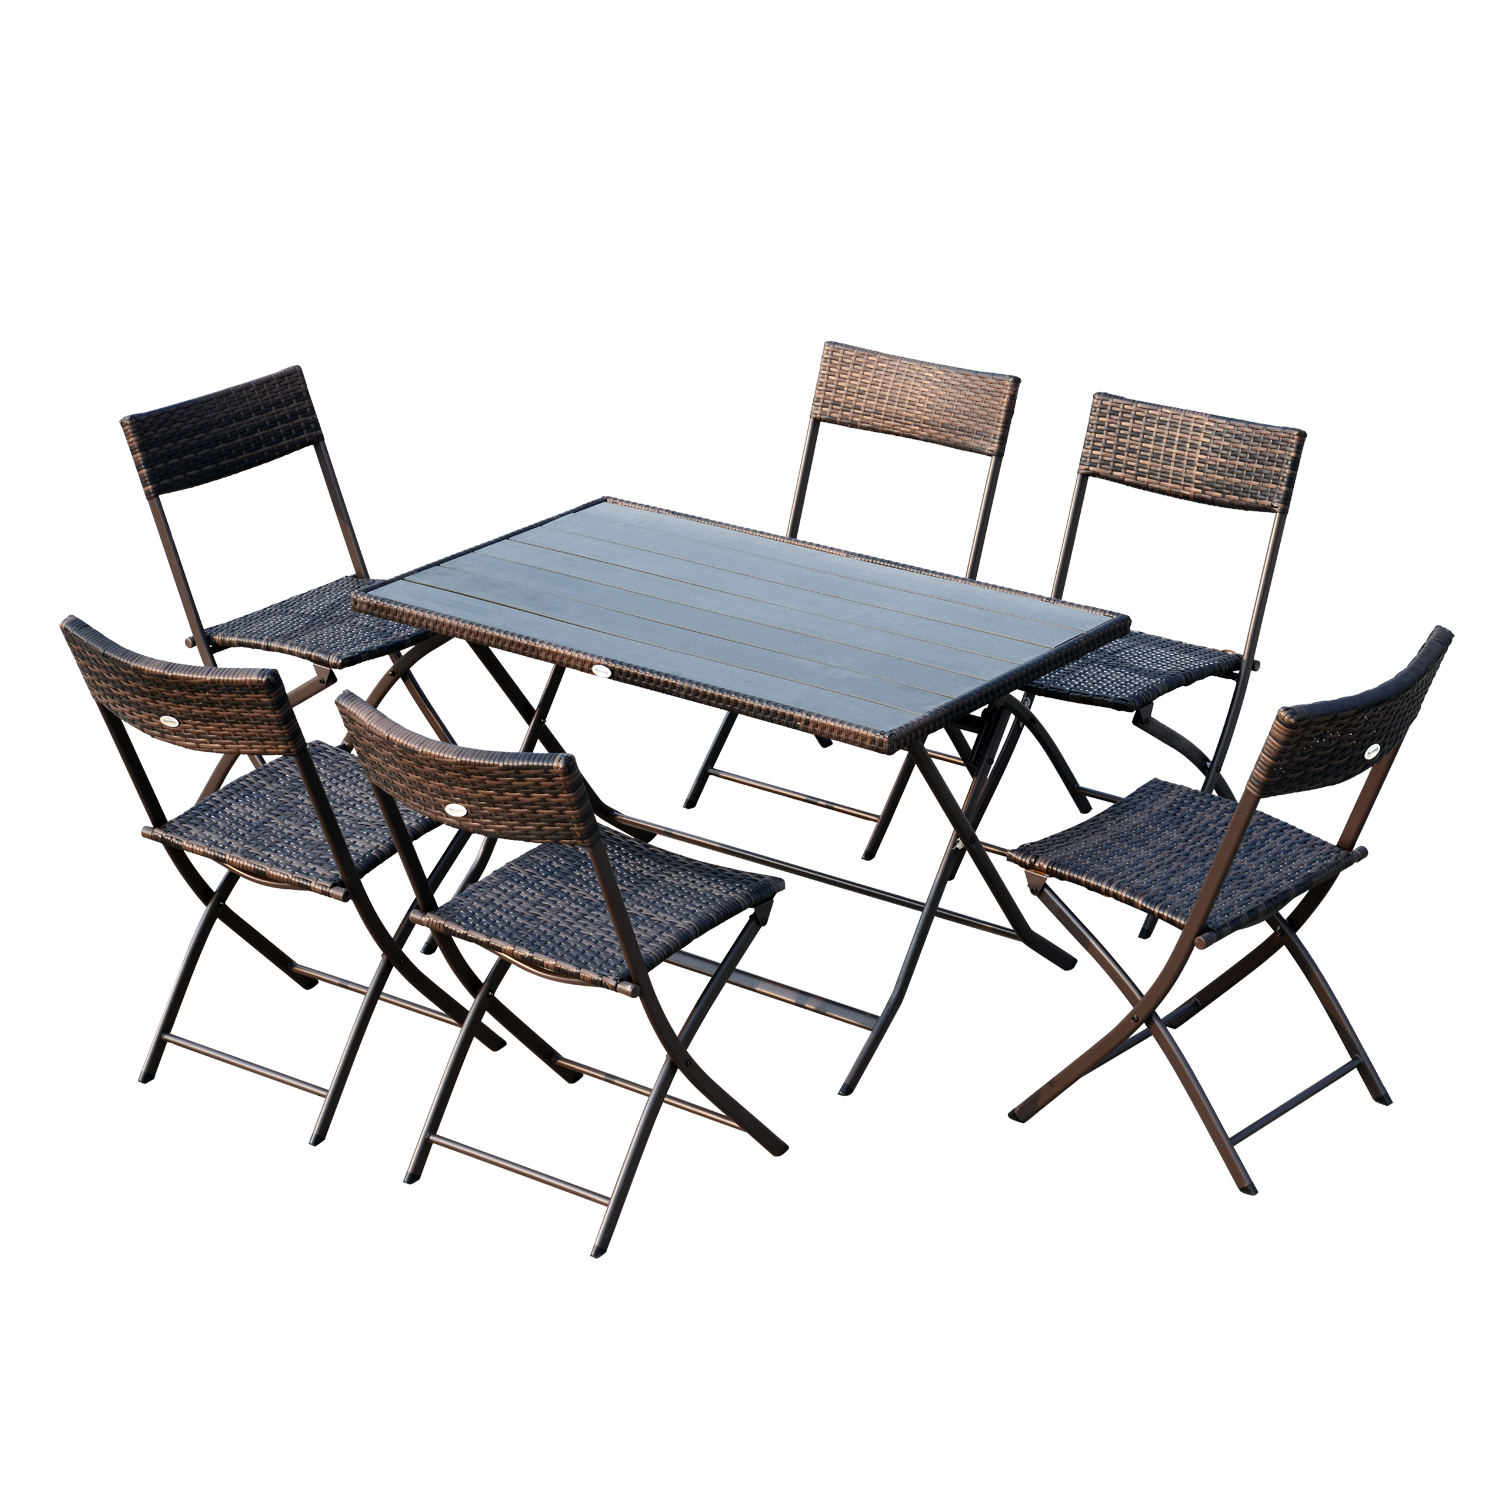 Image of £142.99 Outsunny 7pc Patio Wicker Rattan Dining Set-Brown / Set 6 Folding Chair Polywood Top Table Outdoor Lawn Garden Furniture - Brown 7 Pieces Foldable Steel 863-032 5056029886007